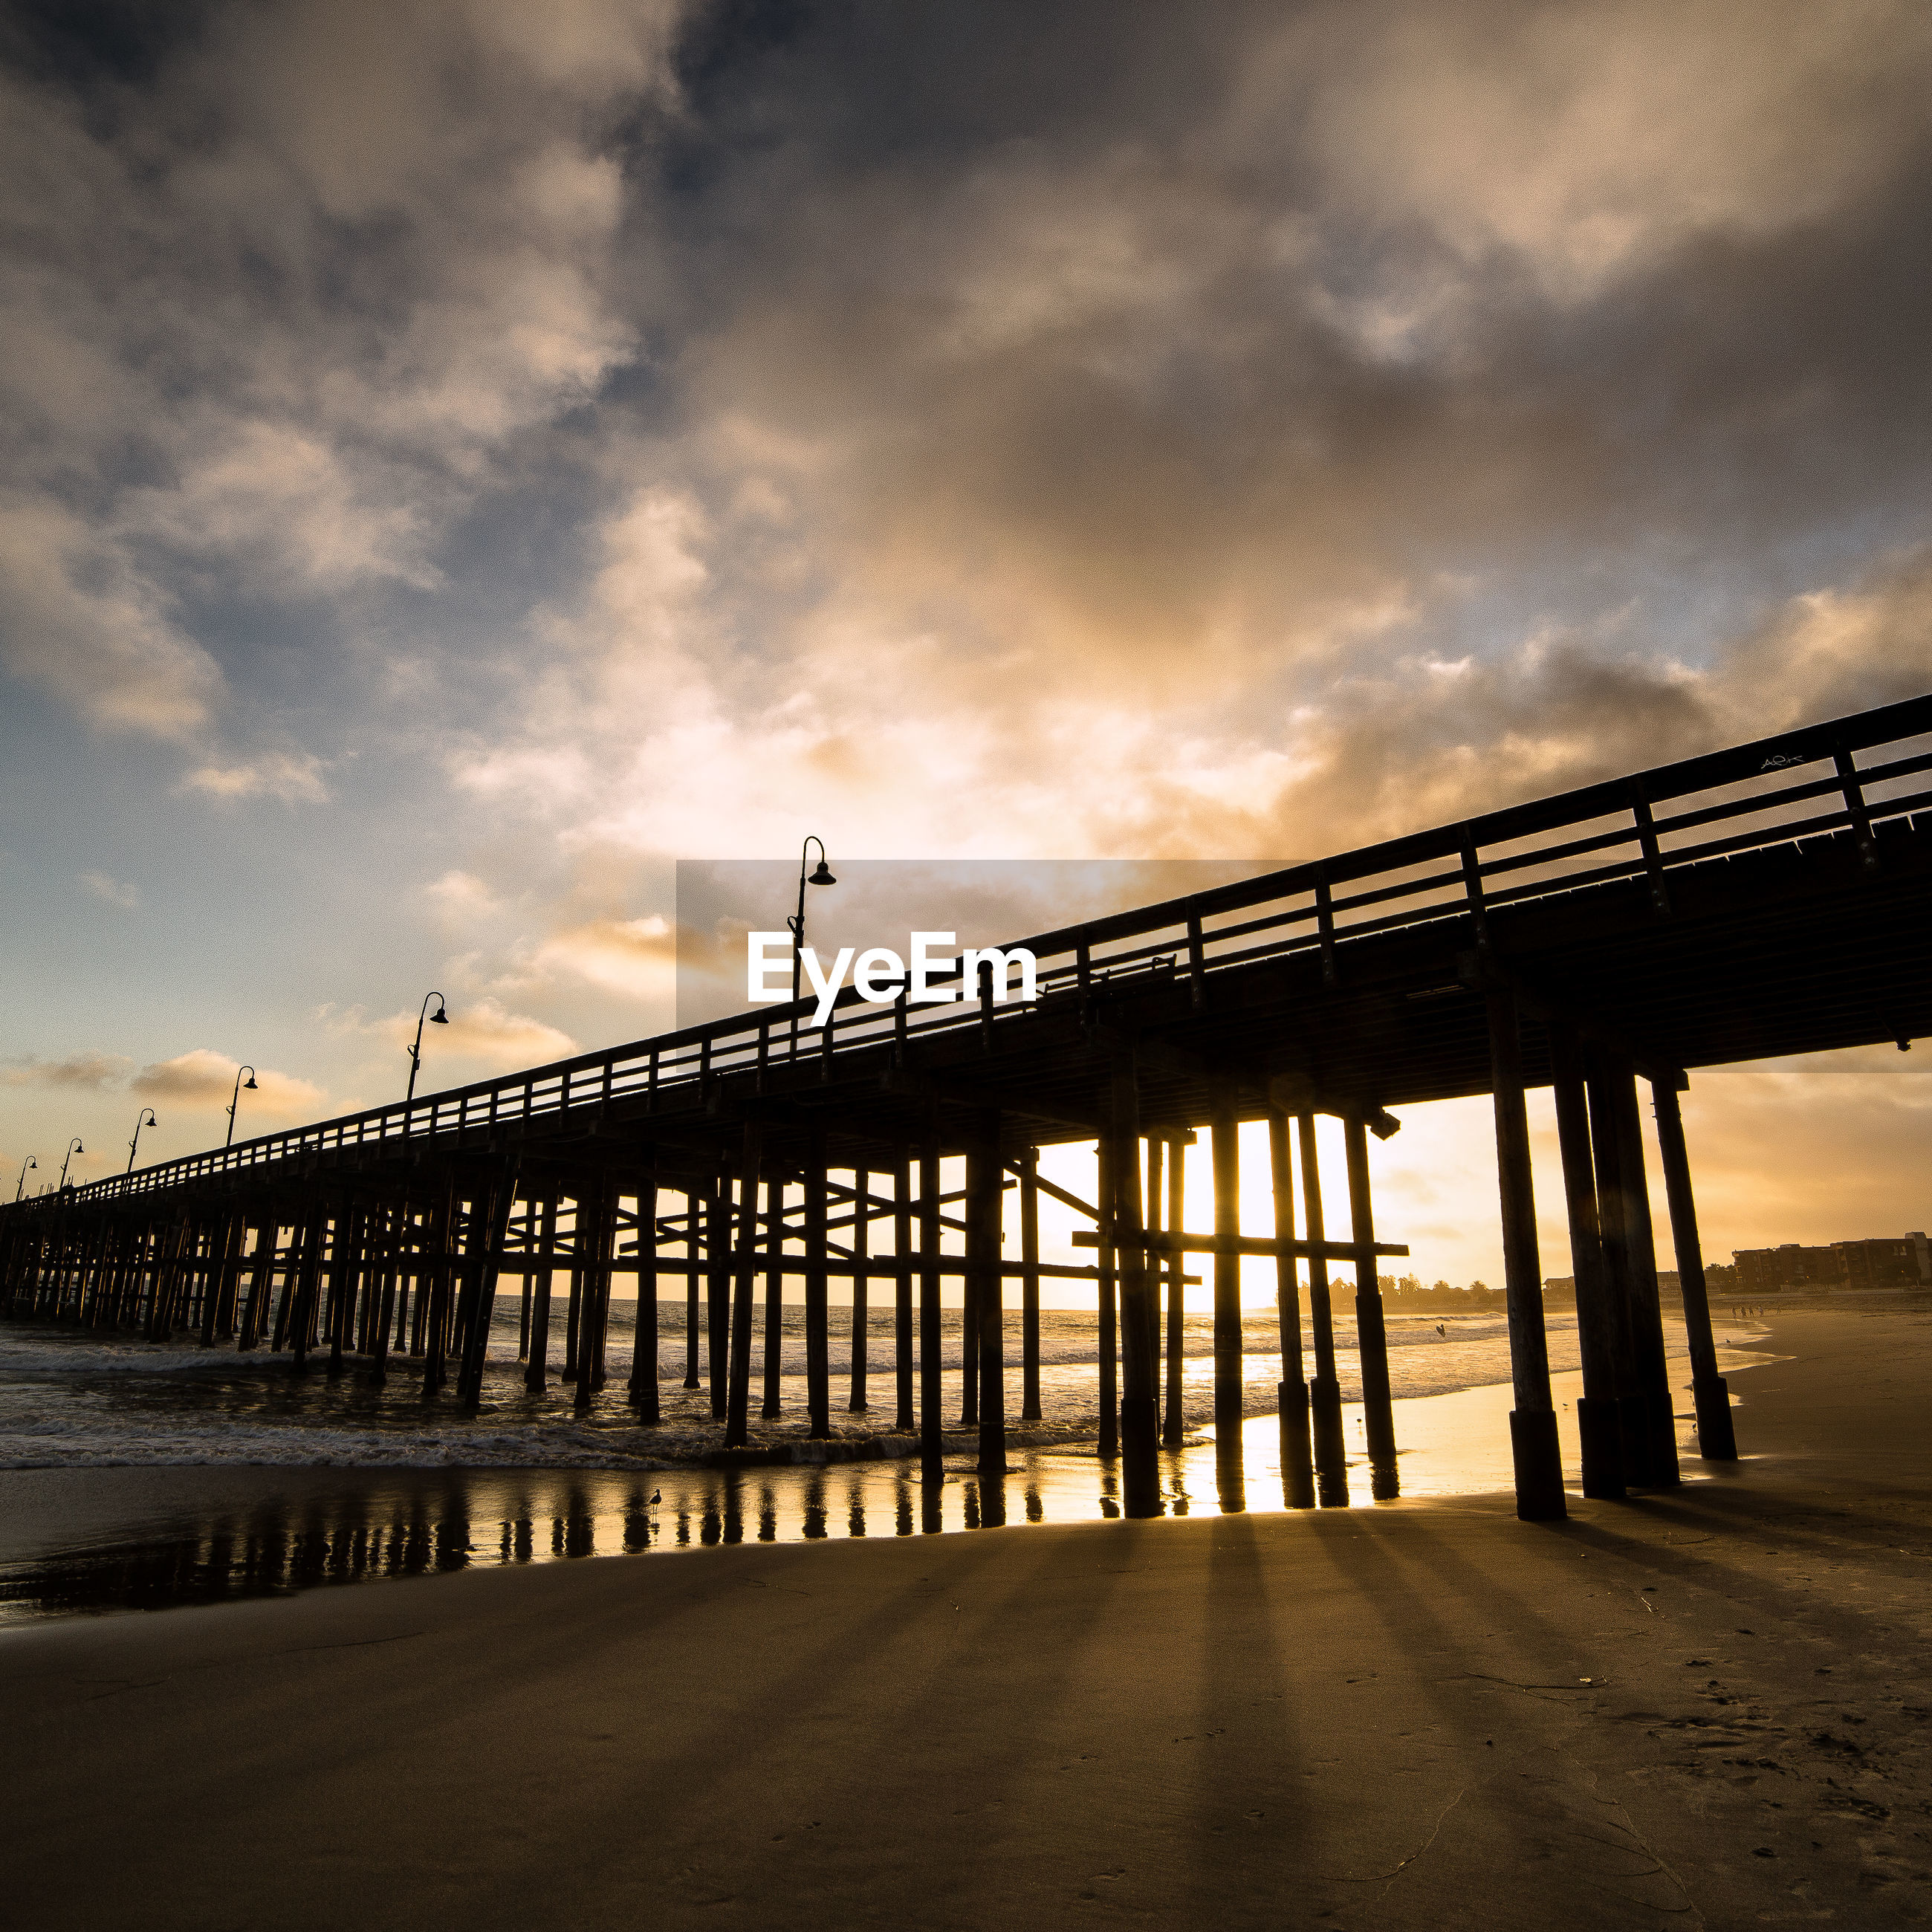 Low angle view of pier on beach during sunset